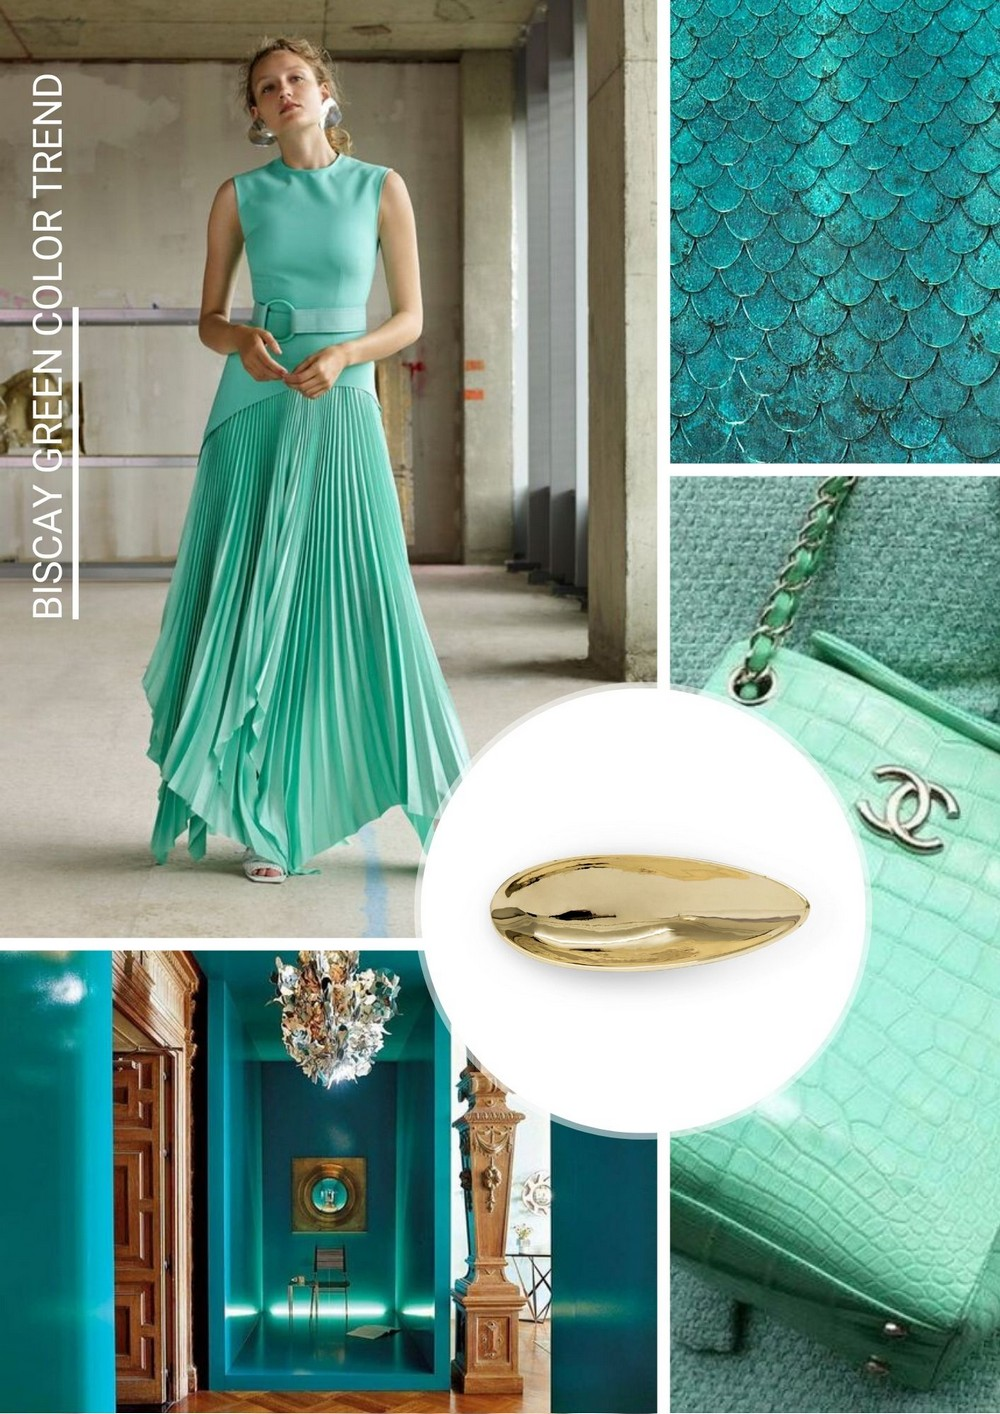 Spring Color Trends for 2020 in Both Interior Design and Fashion 1 spring color trends Spring Color Trends for 2020 in Both Interior Design and Fashion Spring Color Trends for 2020 in Both Interior Design and Fashion 1